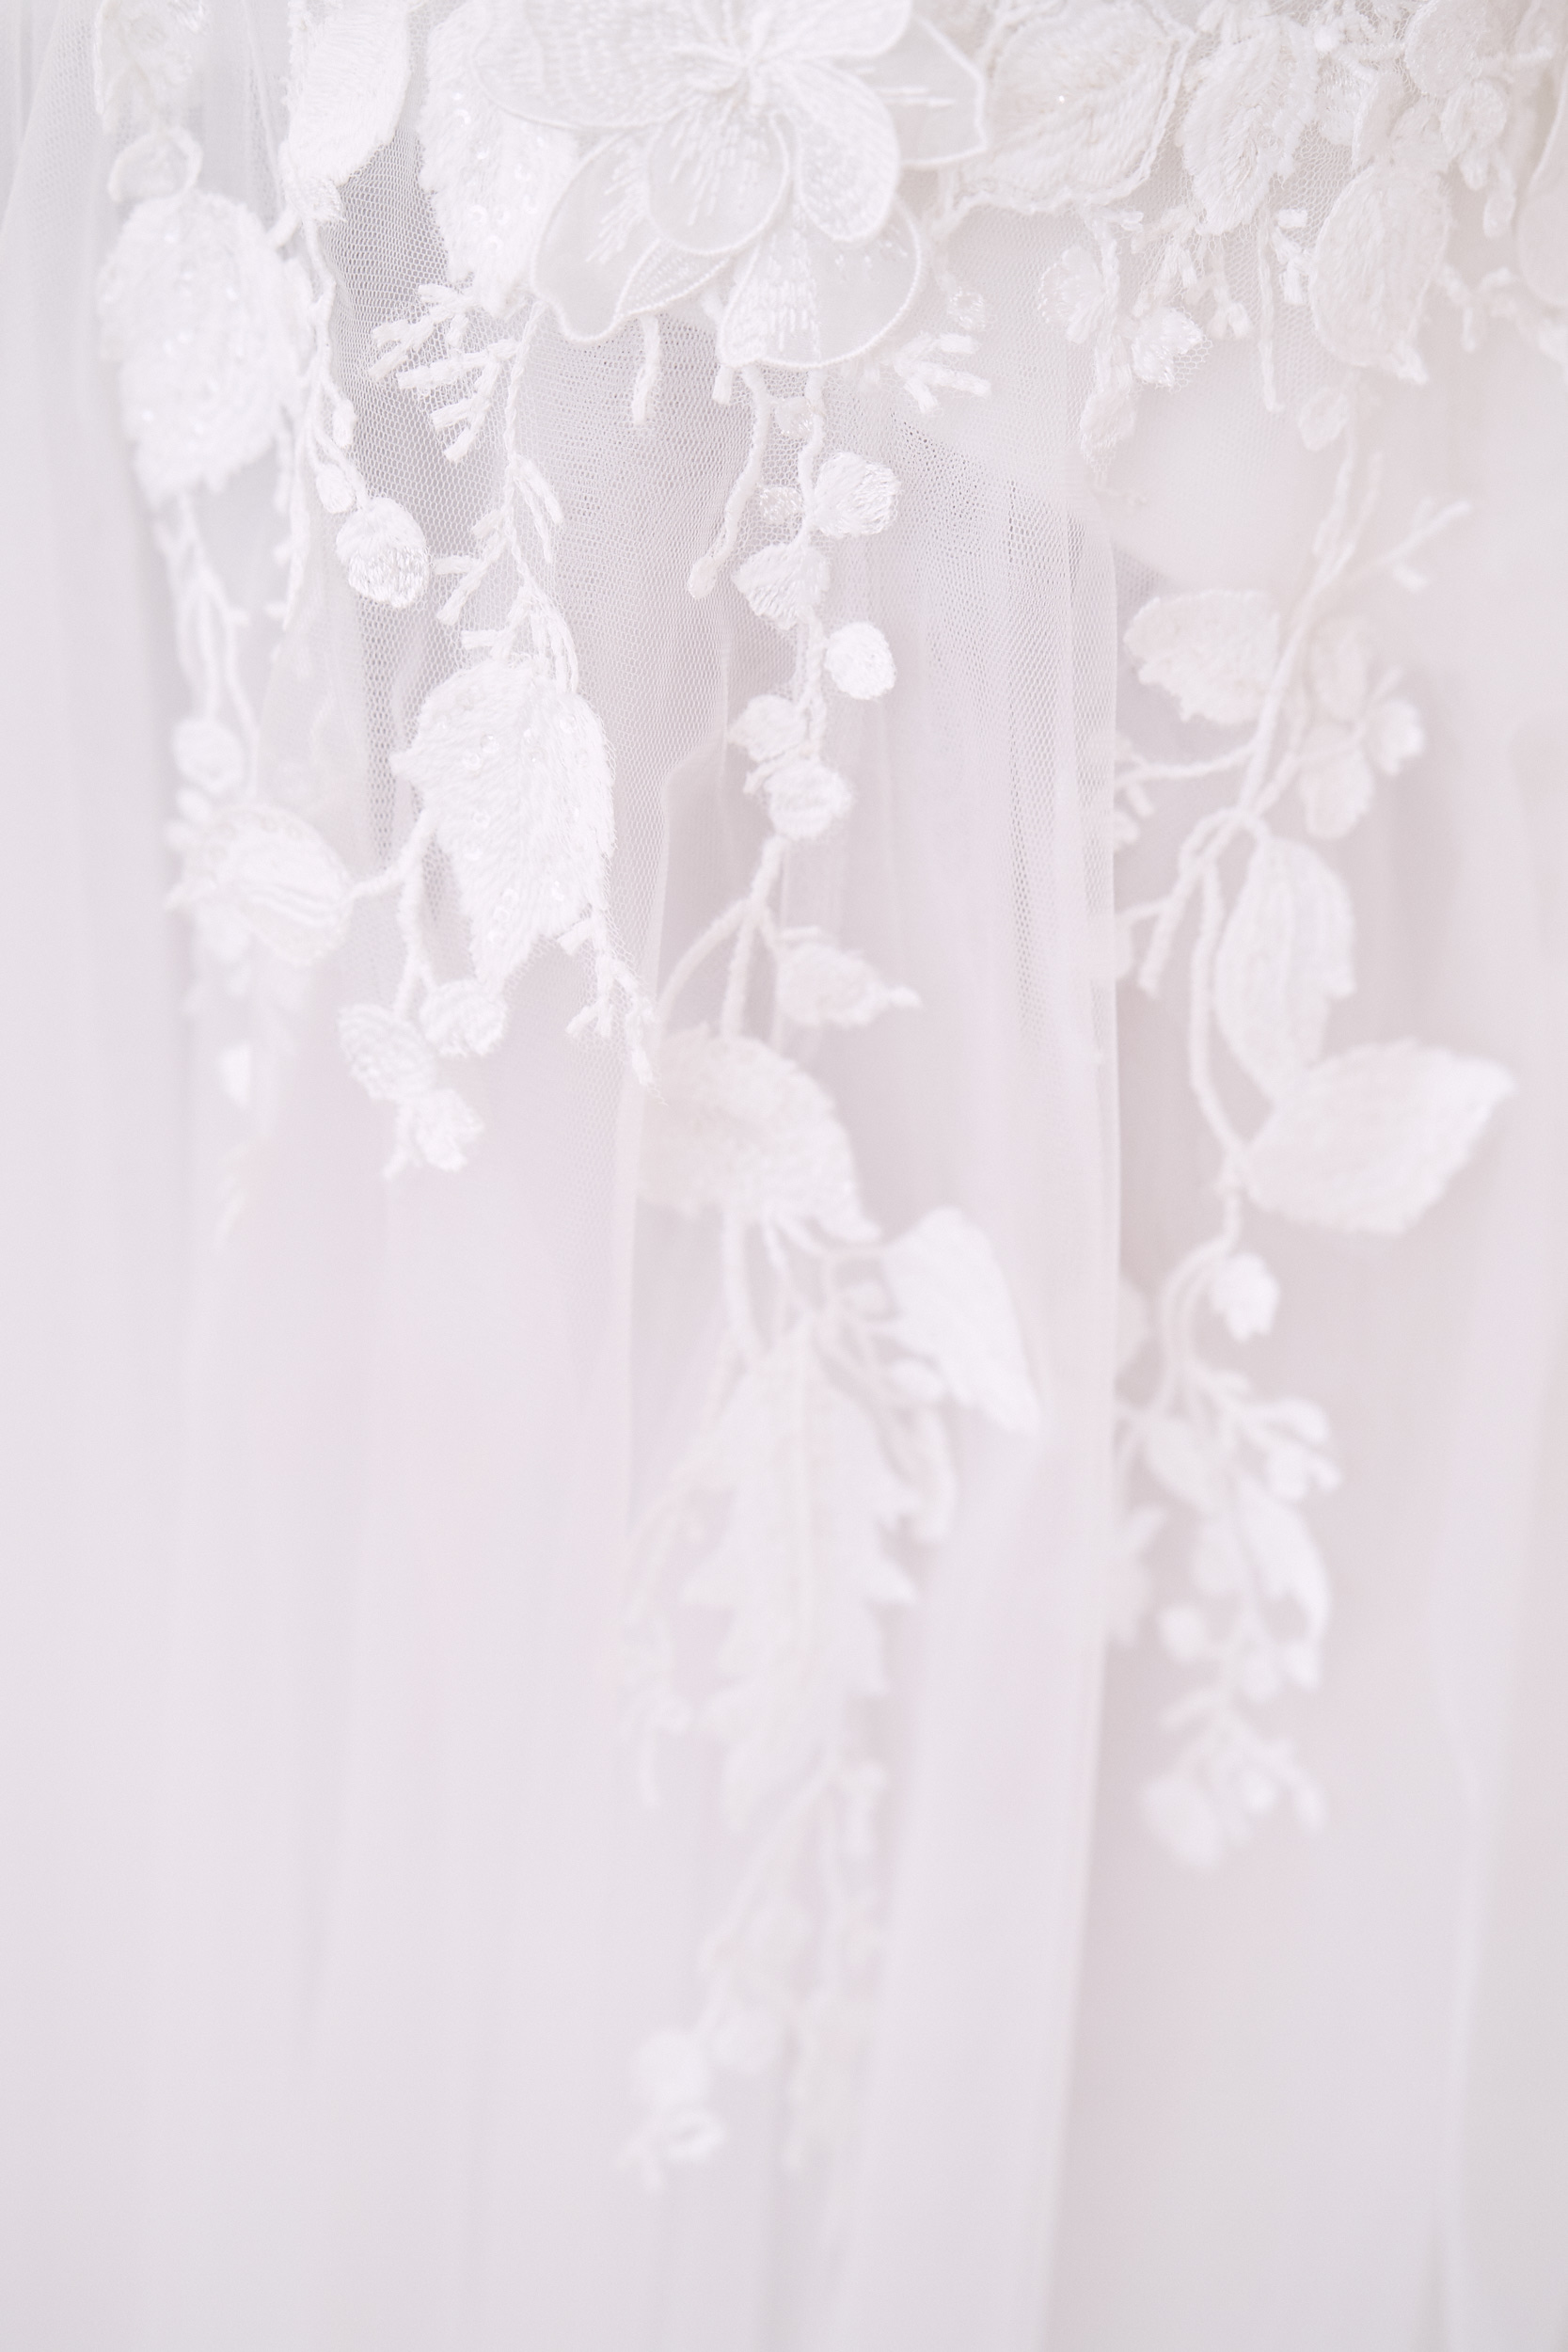 Melbourne Botanical garden wedding. wedding dress detail. Lost In Love Photography